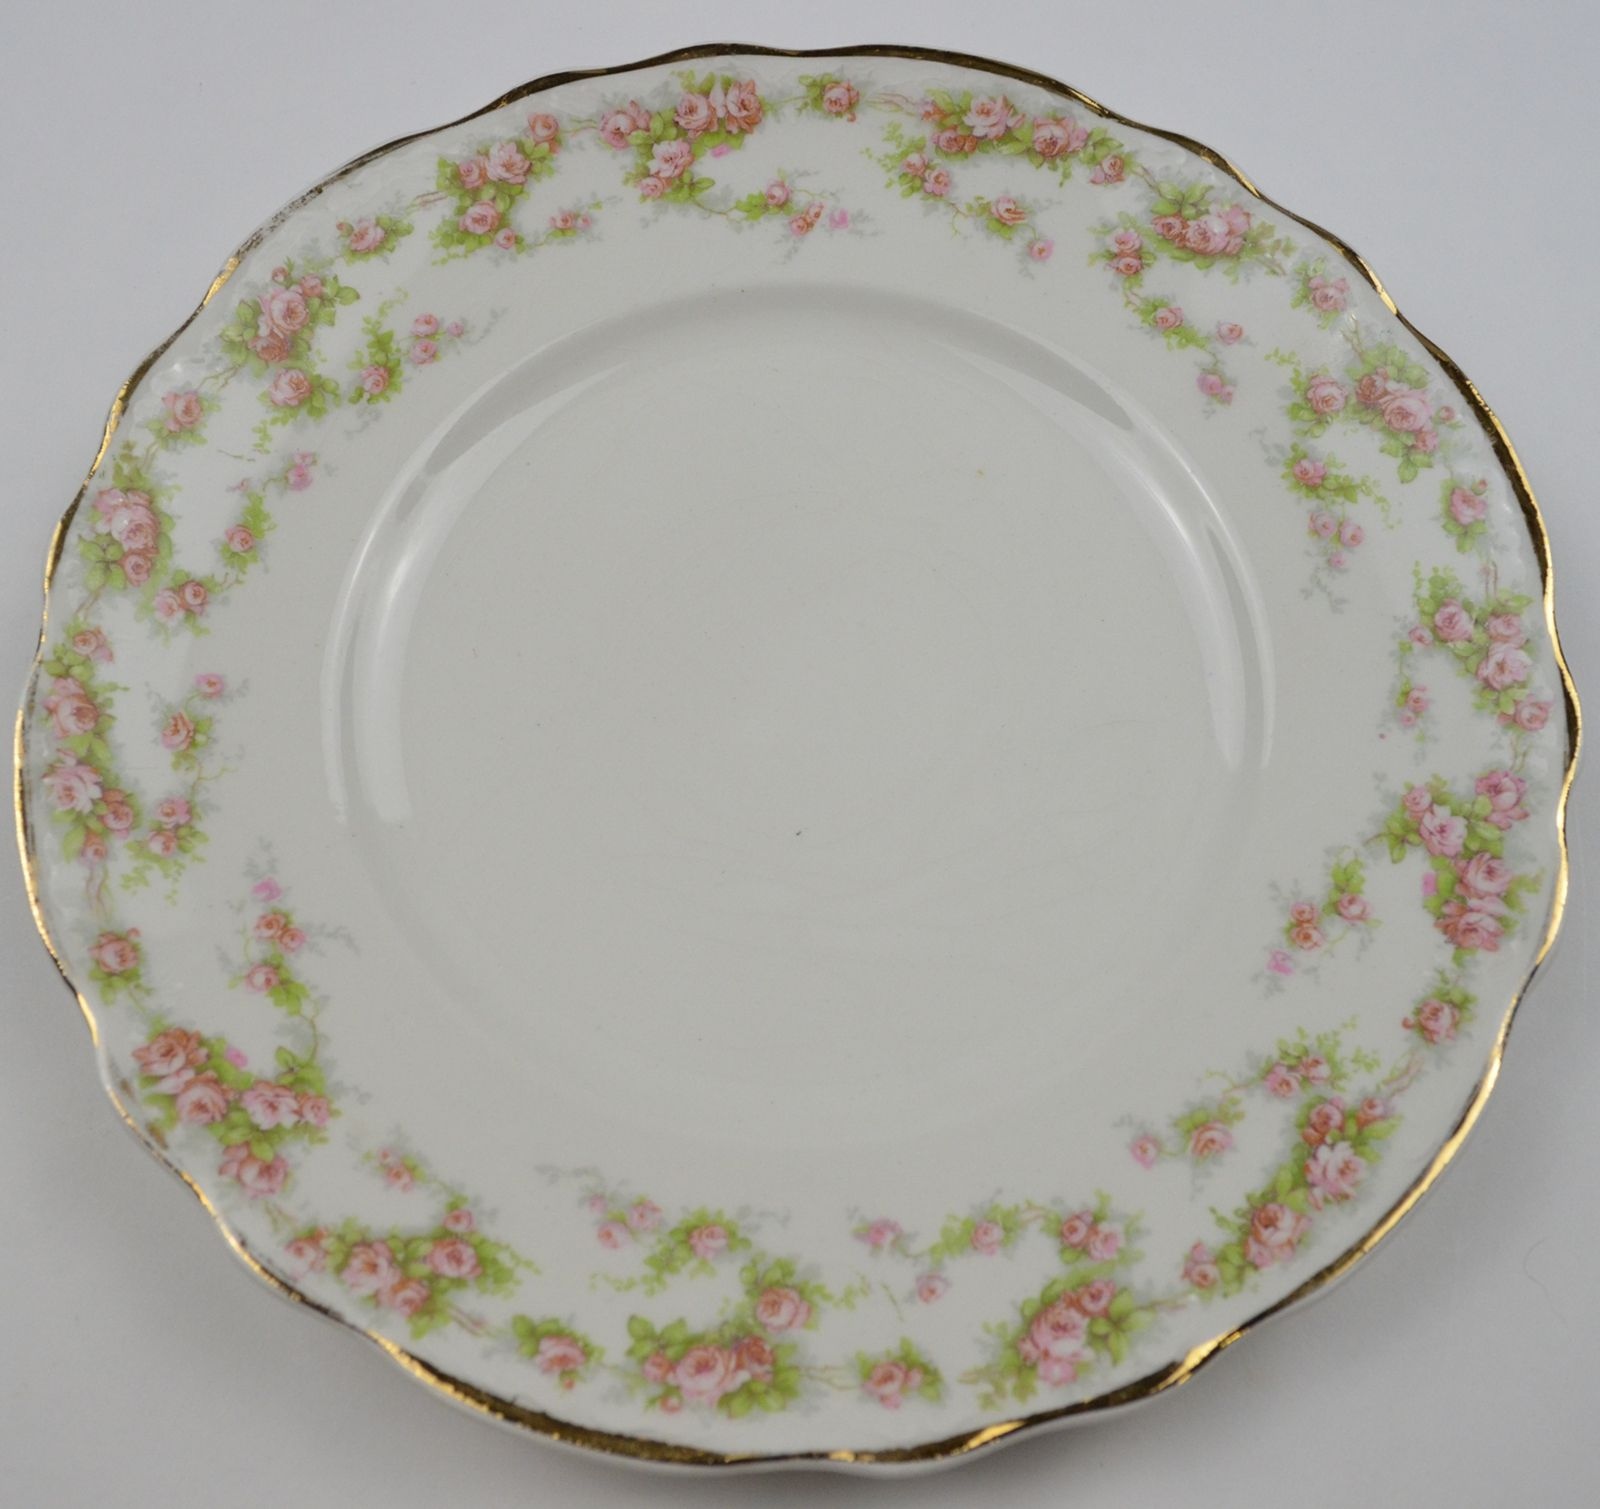 Antique China Patterns Value Details About Vintage Homer Laughlin China Hudson Pink Floral Pattern